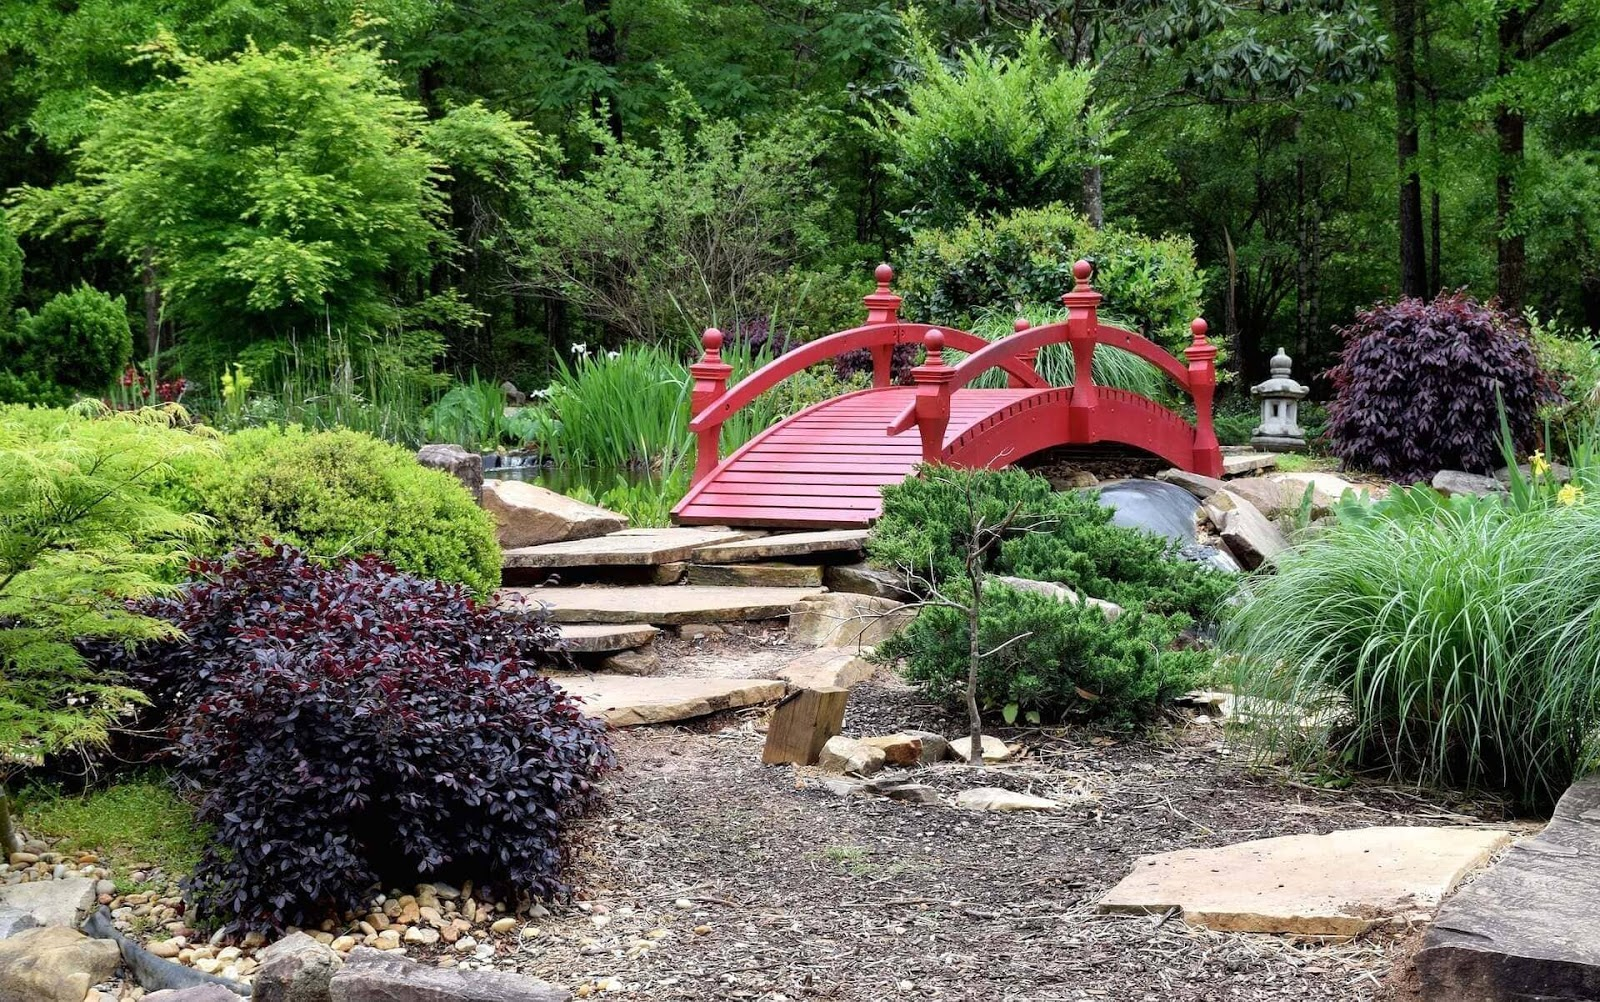 6 steps to an Asian garden design for small and large spaces